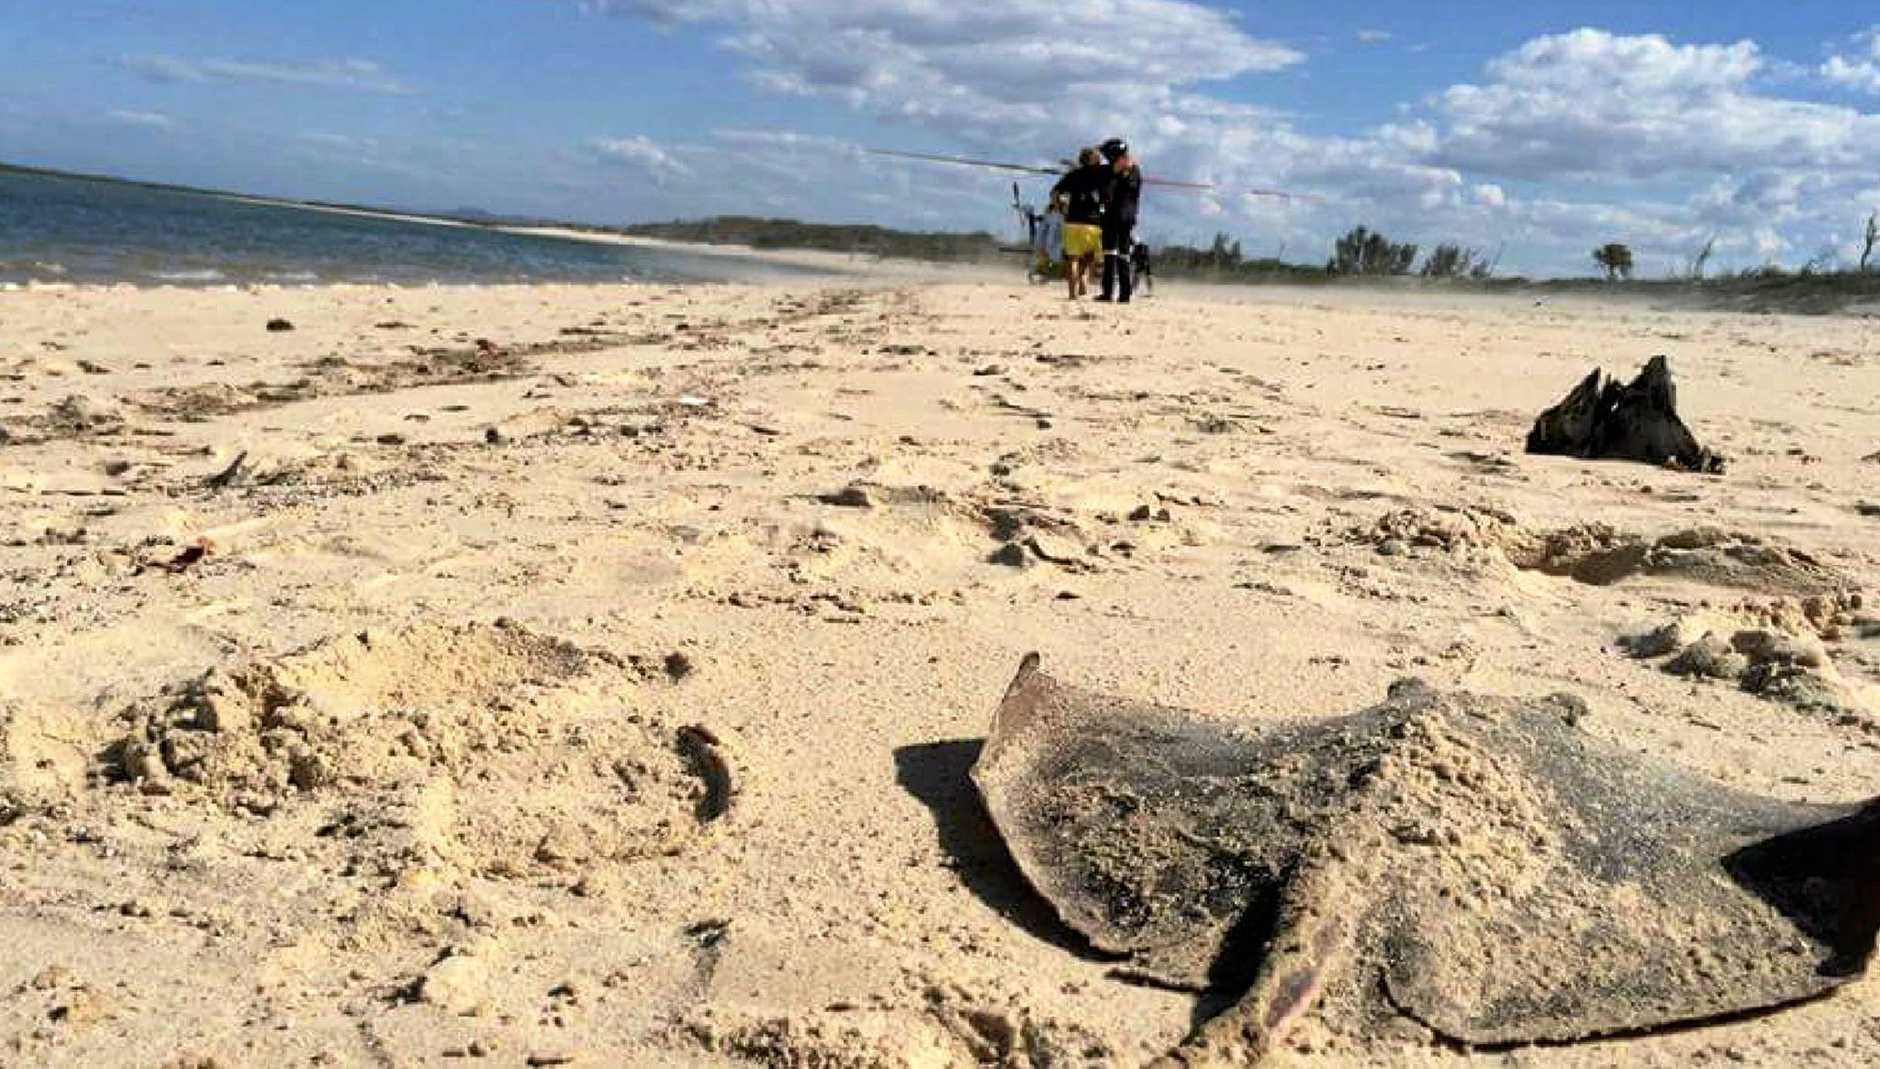 The stingray dragged a man underwater after he was pierced through the leg by the barb of a stingray.